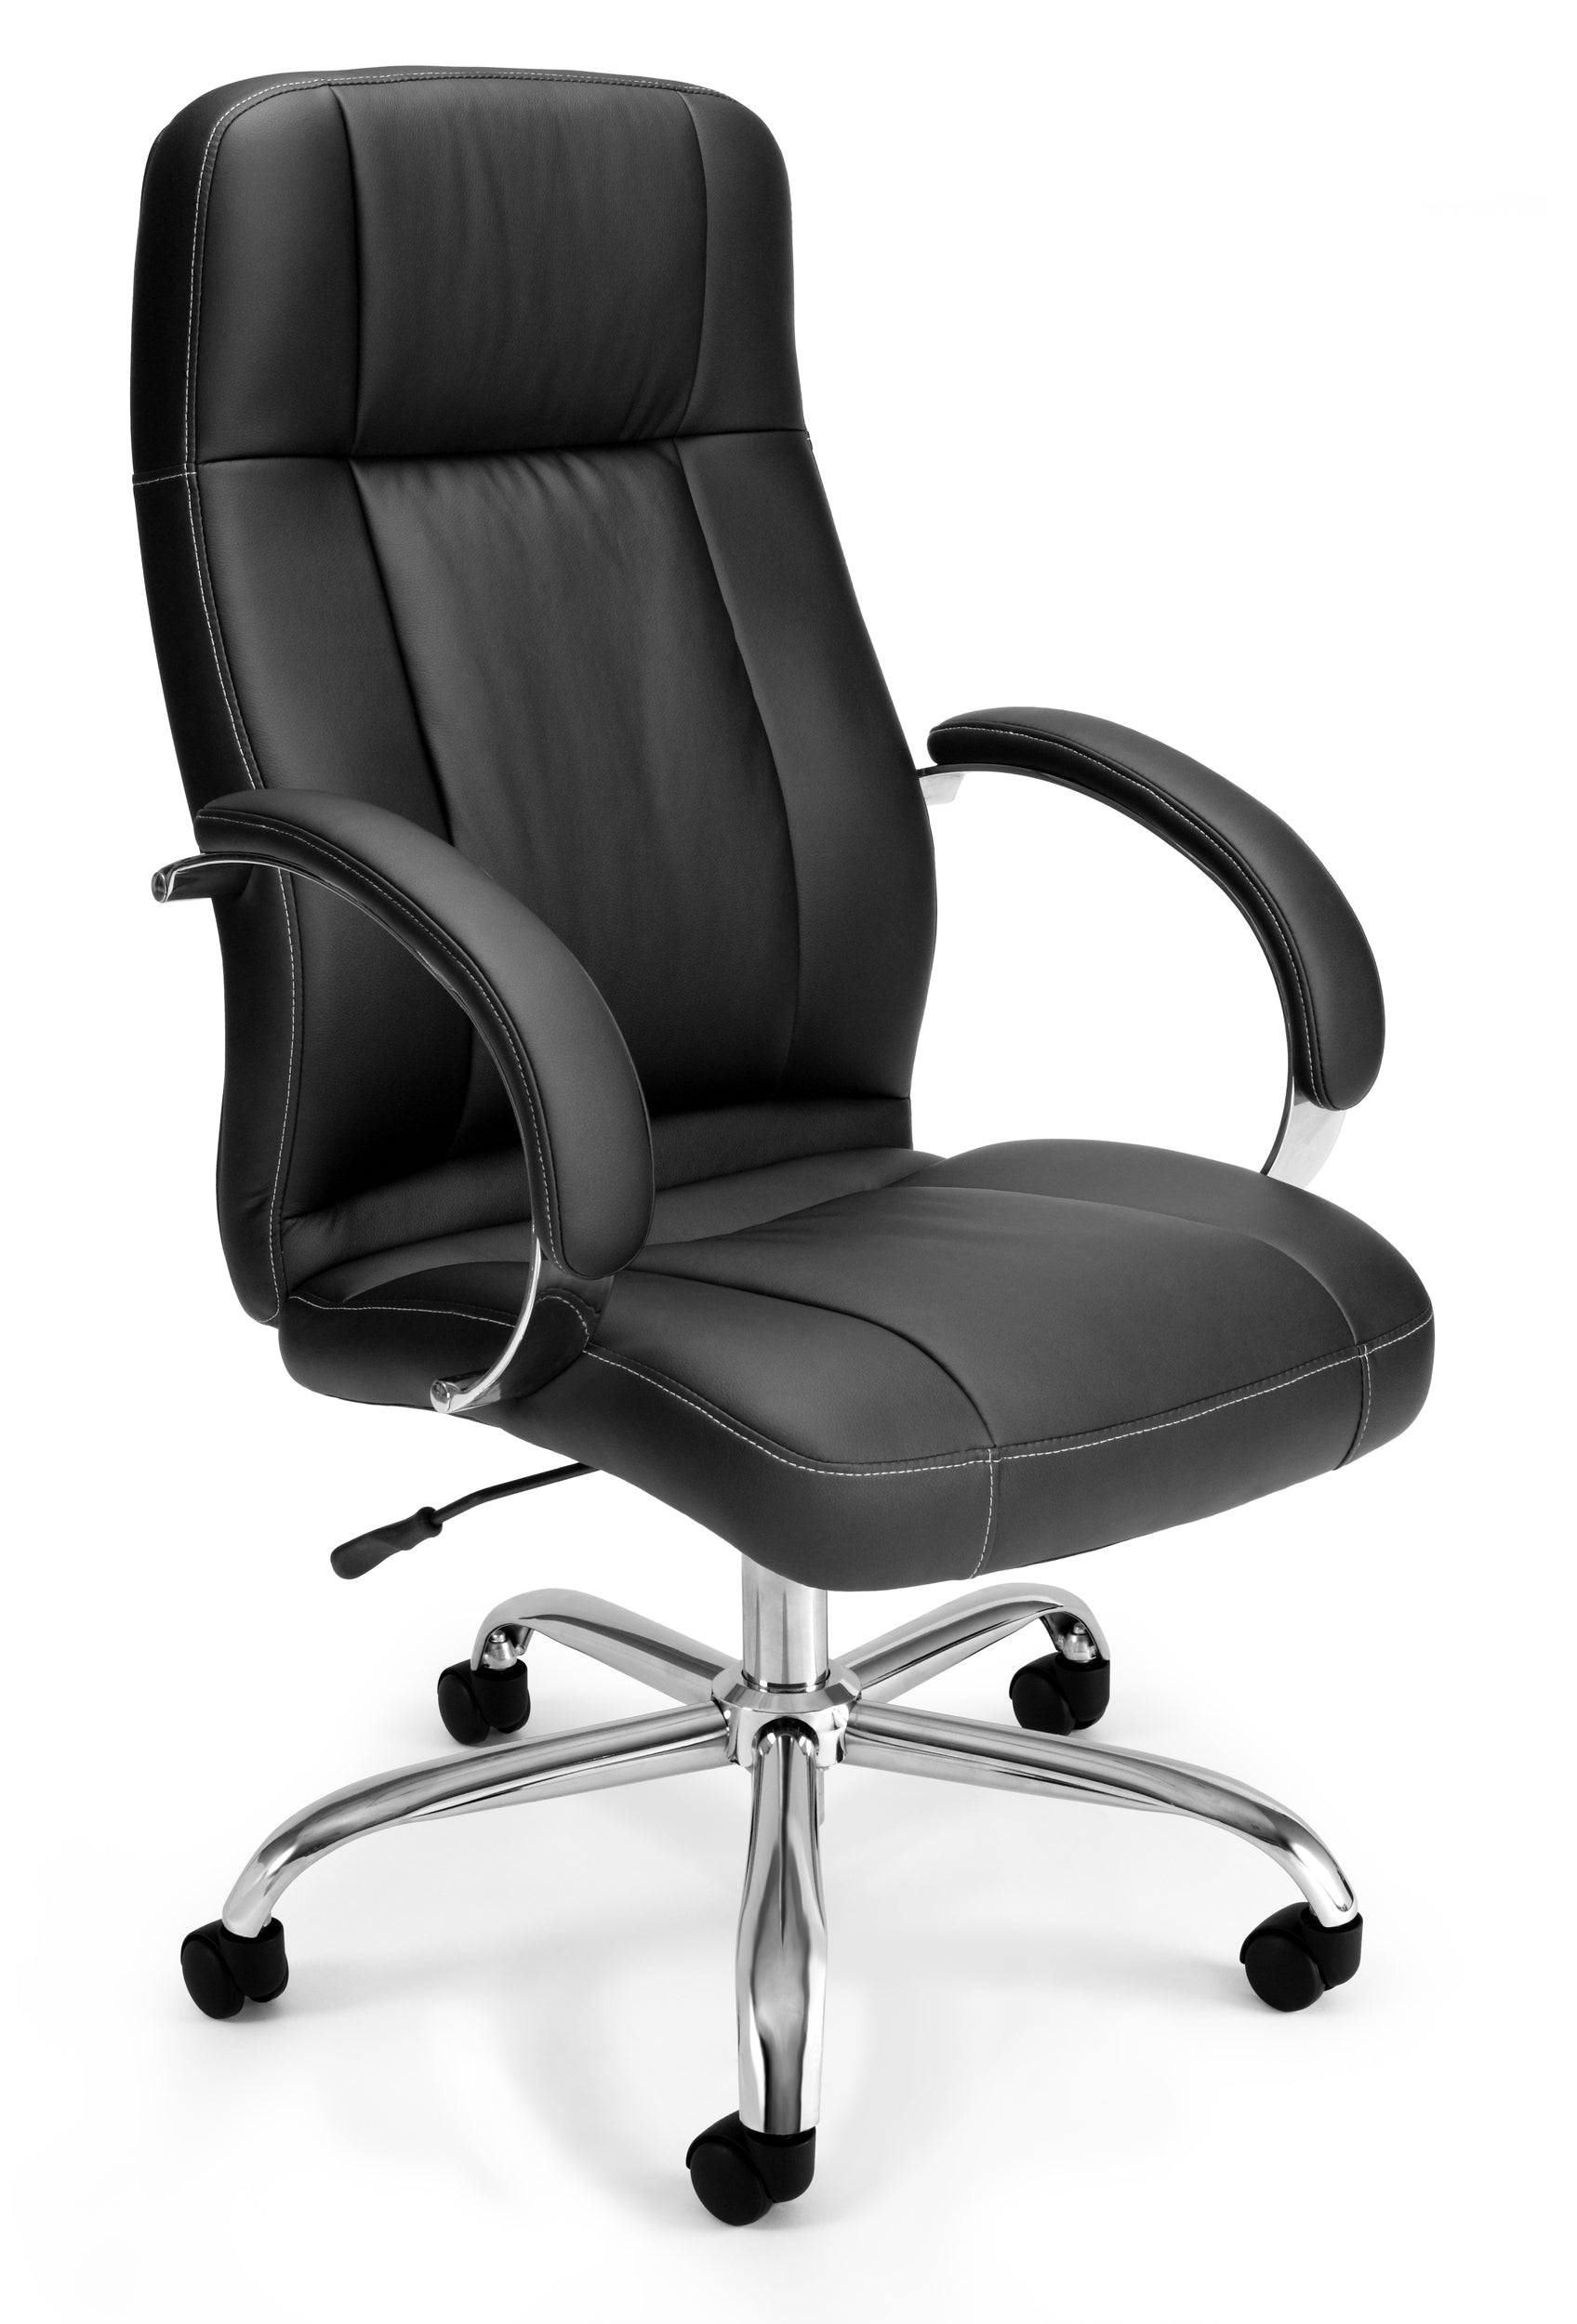 516-LX Stimulus Series Leather High-Back Executive Office Arms Chair